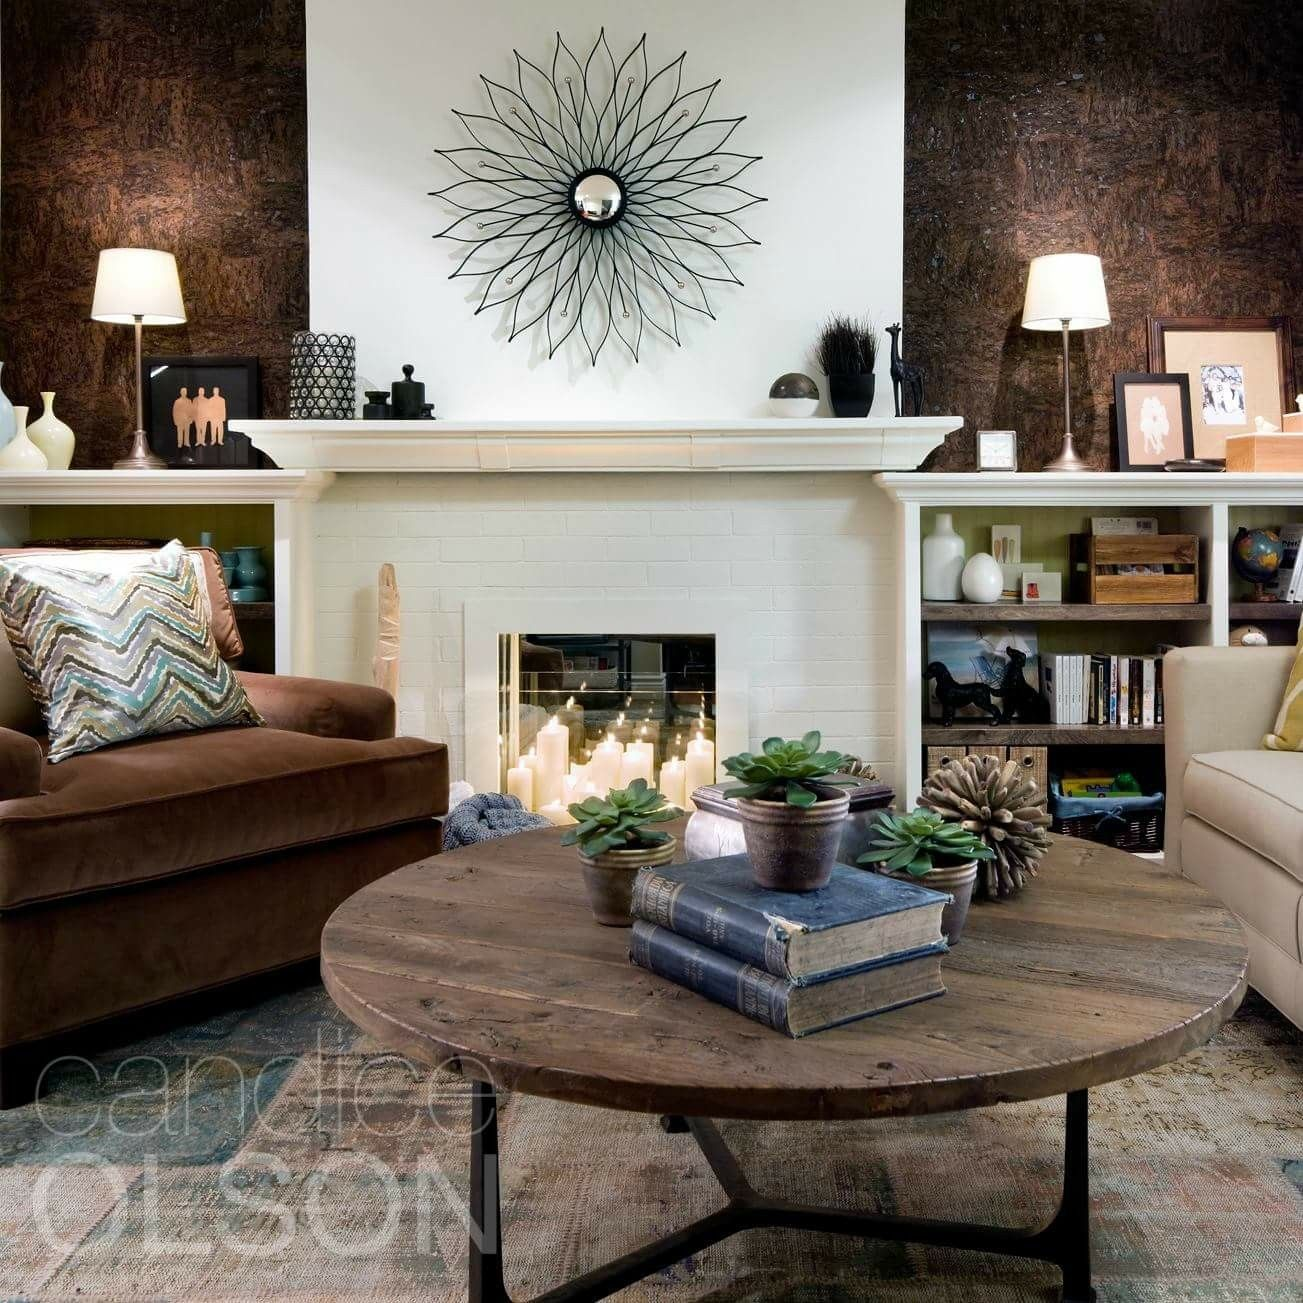 Candice Olson Living Room Decorating Ideas: Pin De Pâmela Cardoso Em Candice Olson